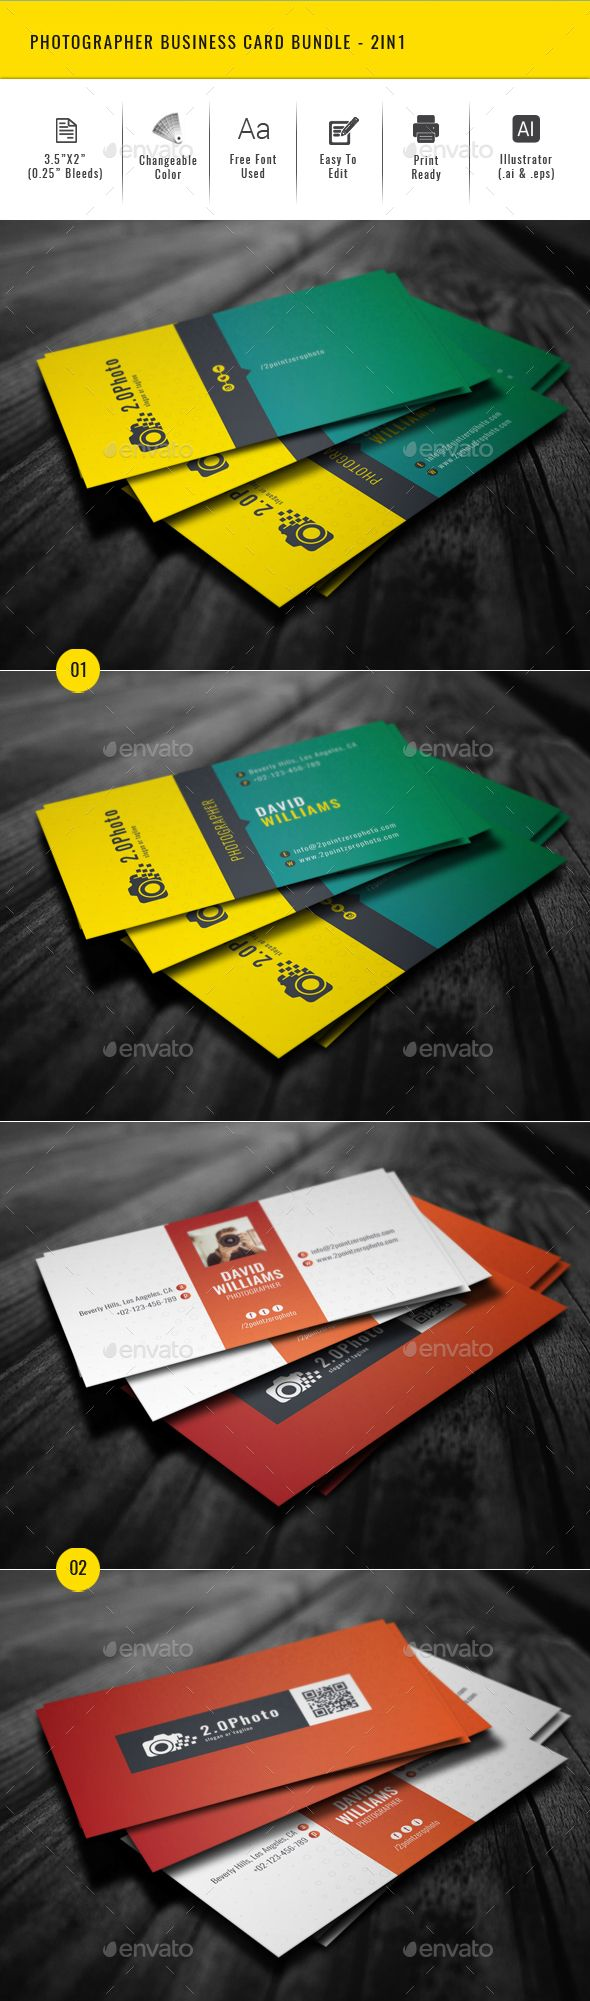 Photographer Business Card Bundle 2in1 Creative Business Card Photographer Business Cards Photography Business Cards Photographer Business Card Template